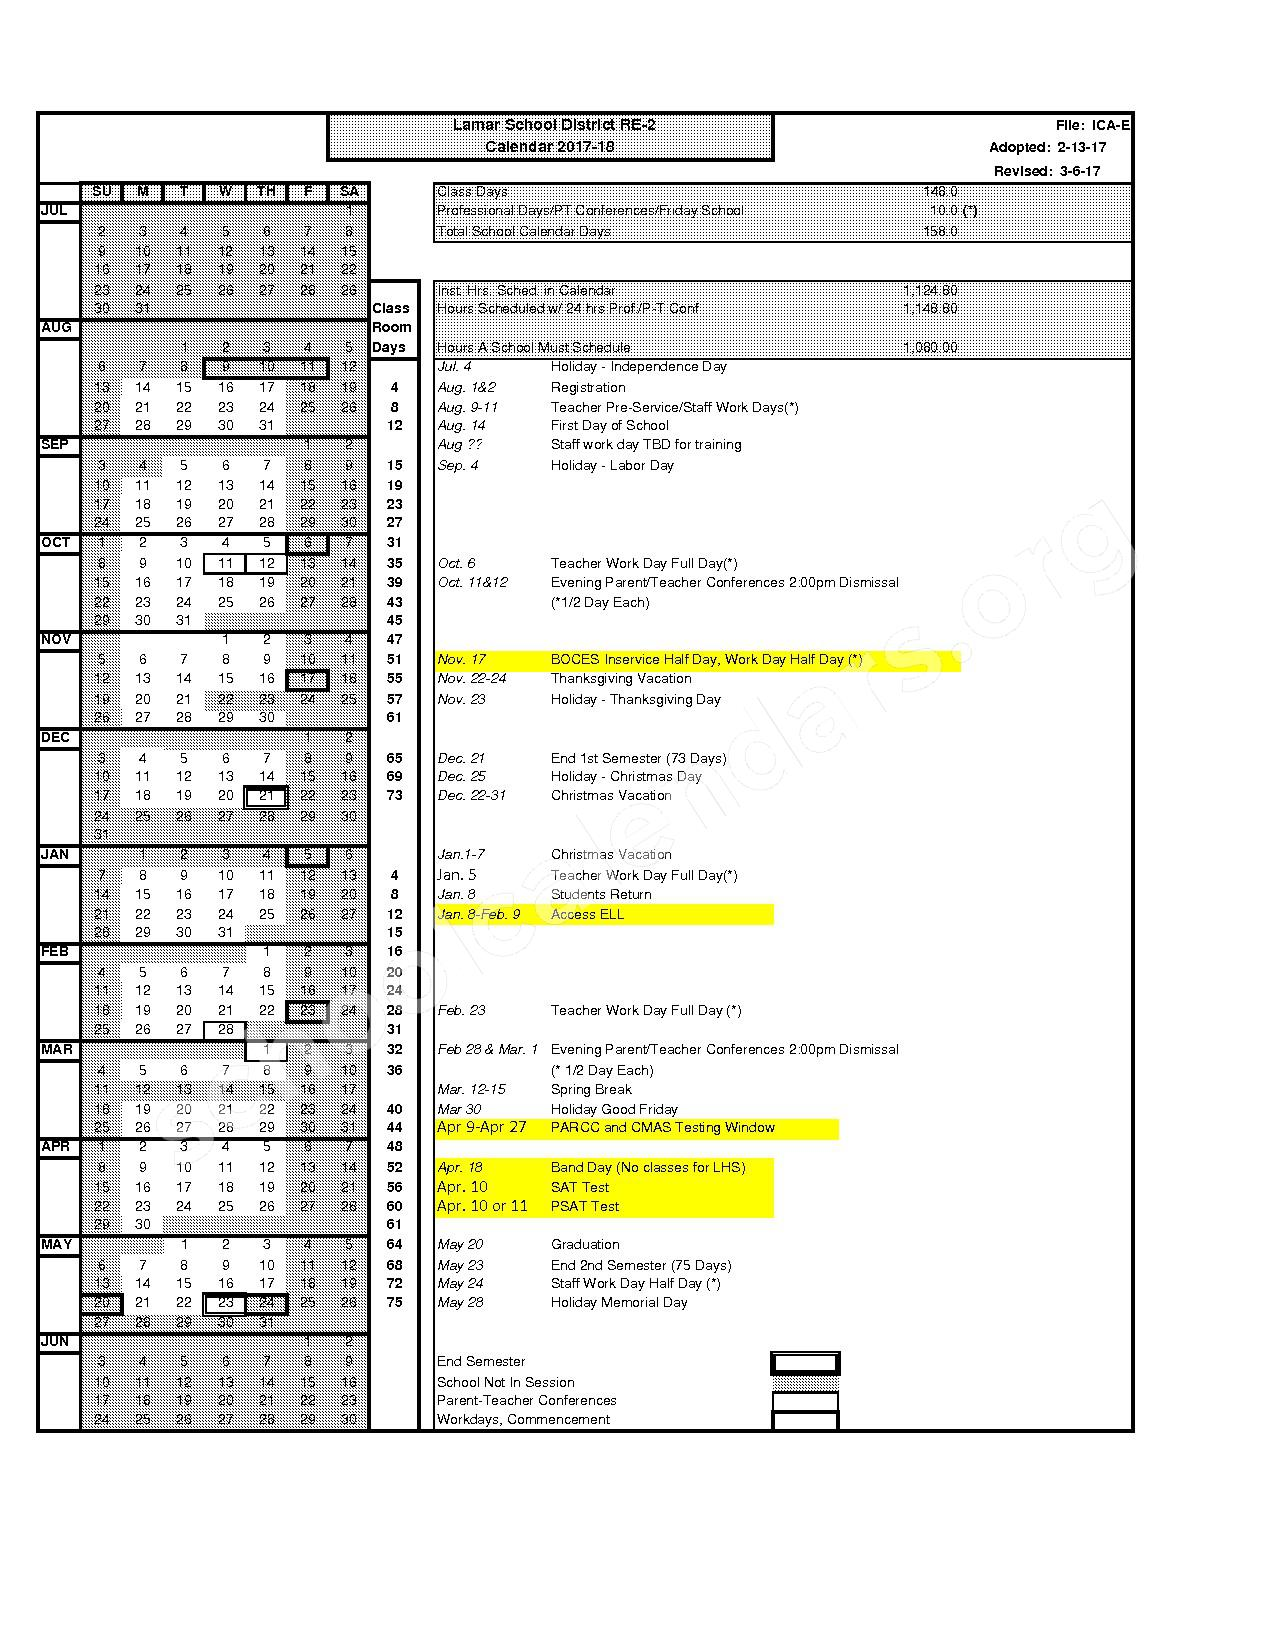 2017 - 2018 District Calendar – Lamar School District RE-2 – page 1